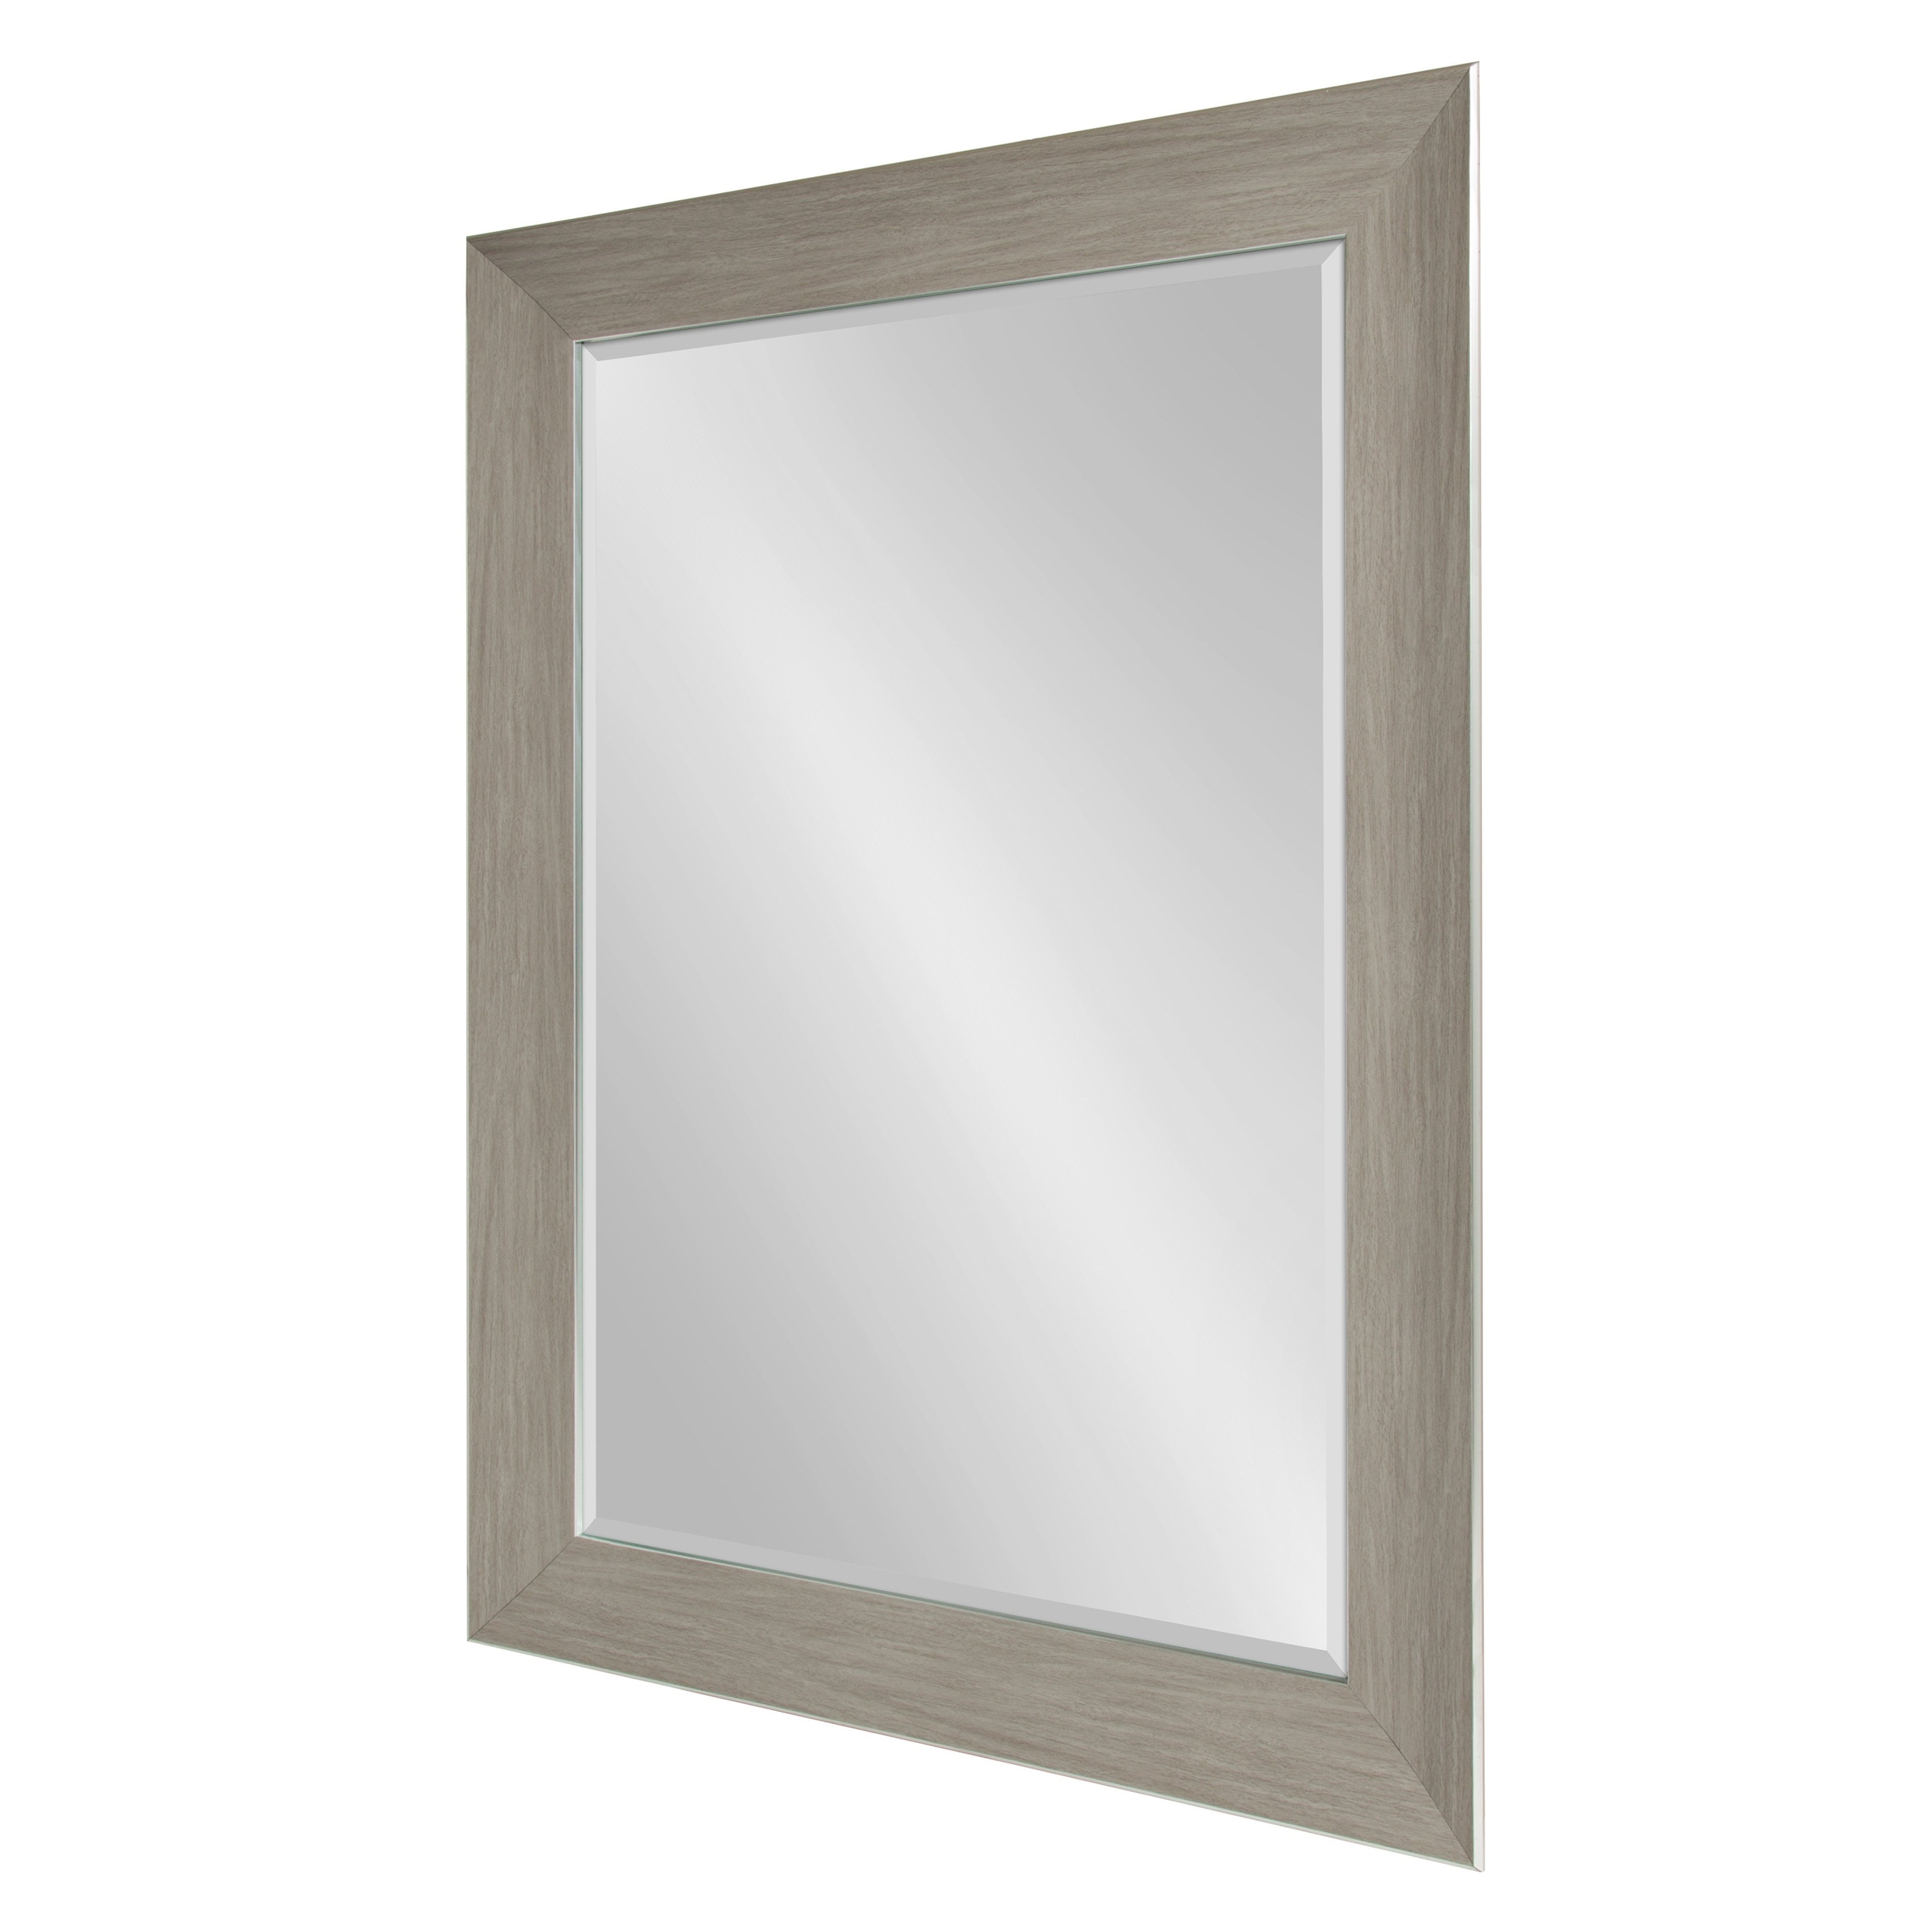 Tahoe Framed Beveled Wall Mirror With Regard To Most Current Beveled Wall Mirrors (View 8 of 20)